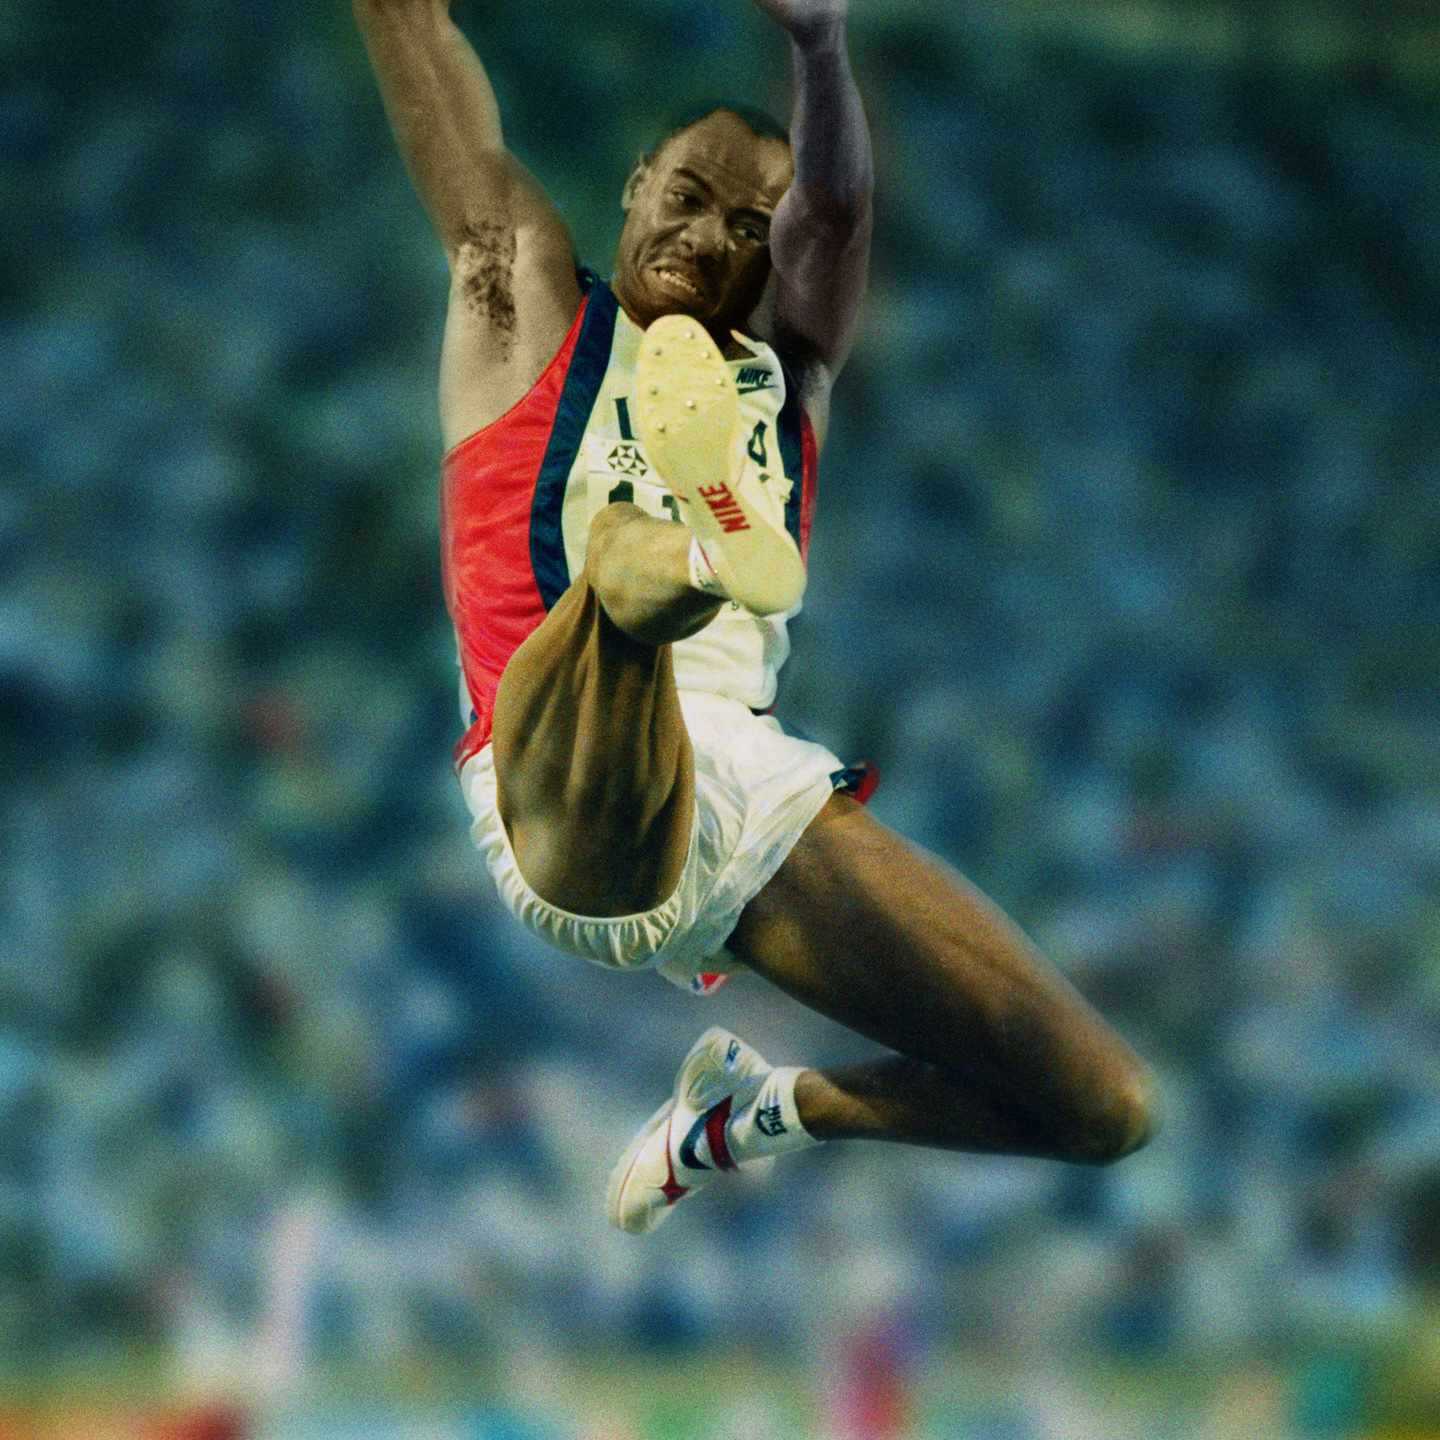 Mike Powell of the United State during the Long Jump event